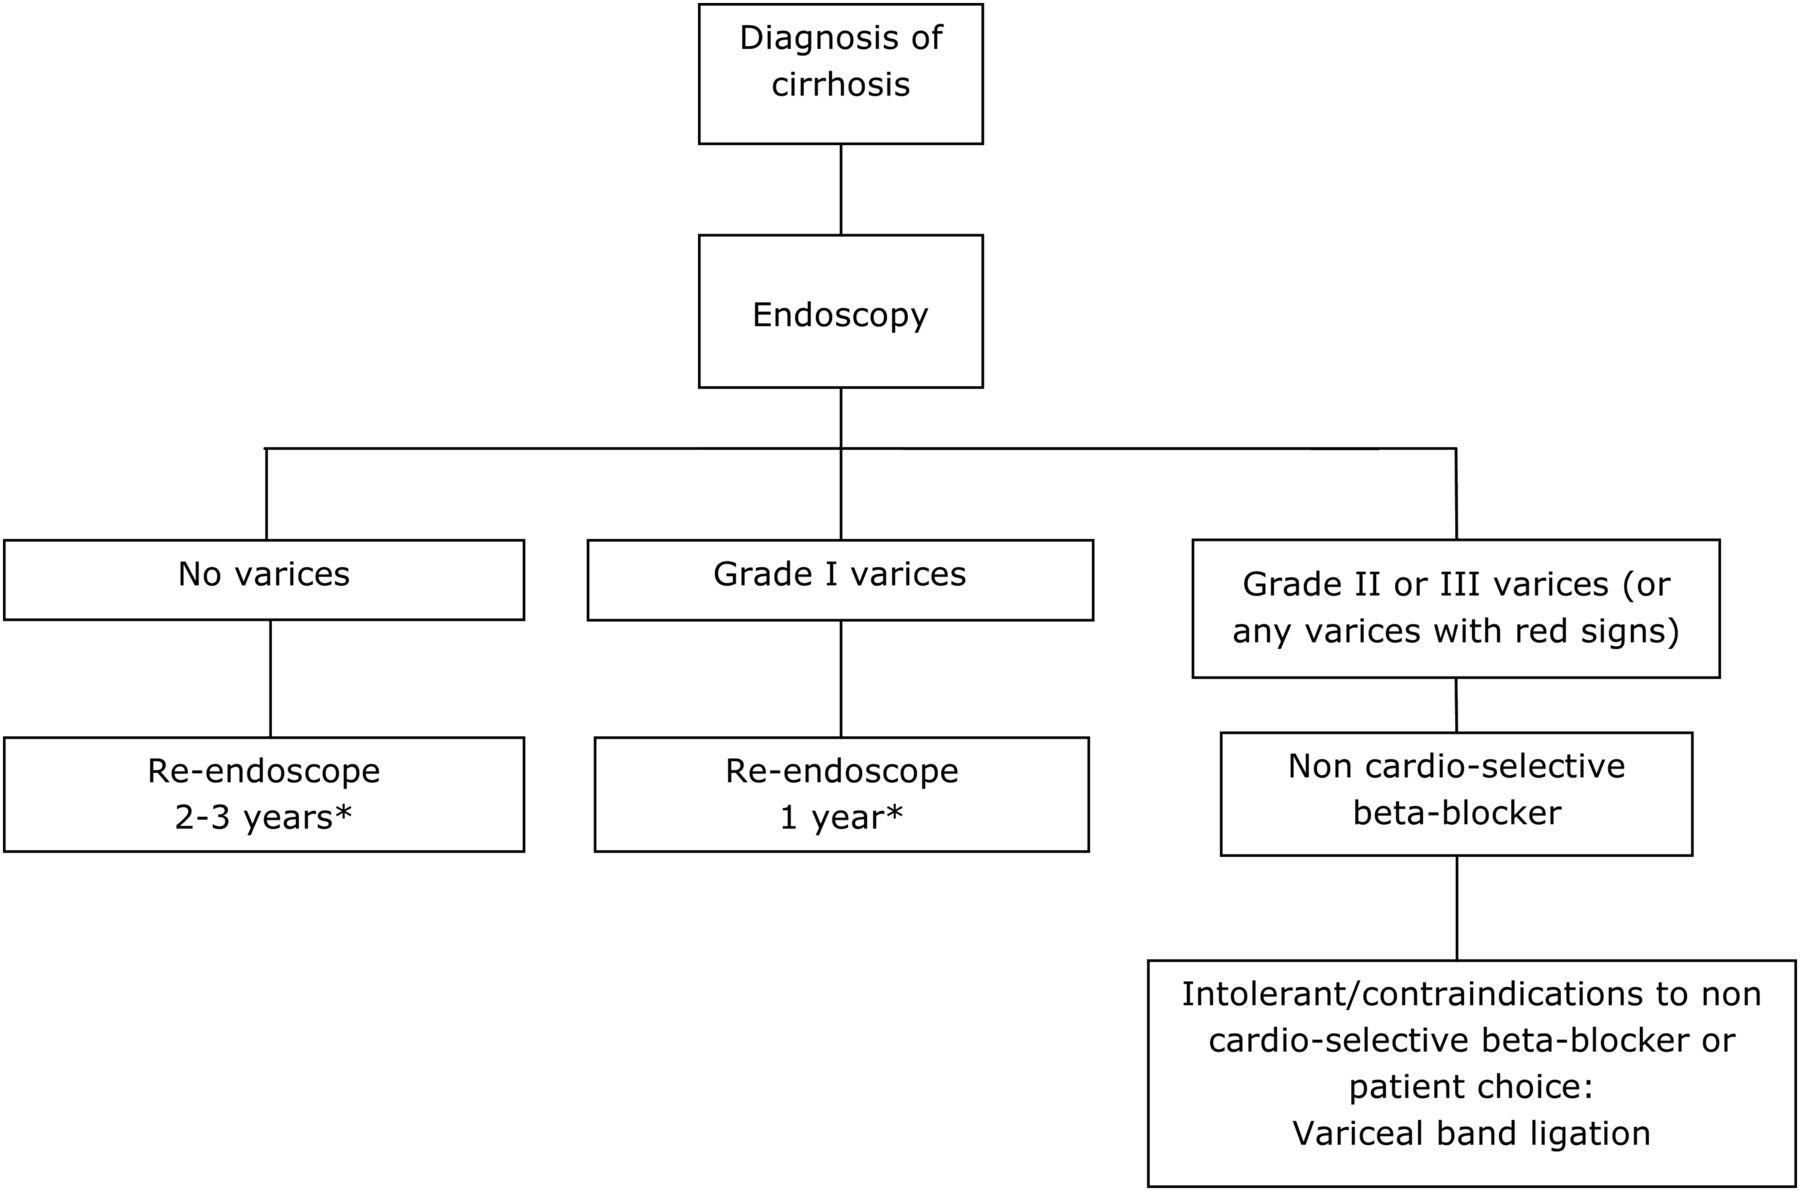 UK guidelines on the management of variceal haemorrhage in cirrhotic